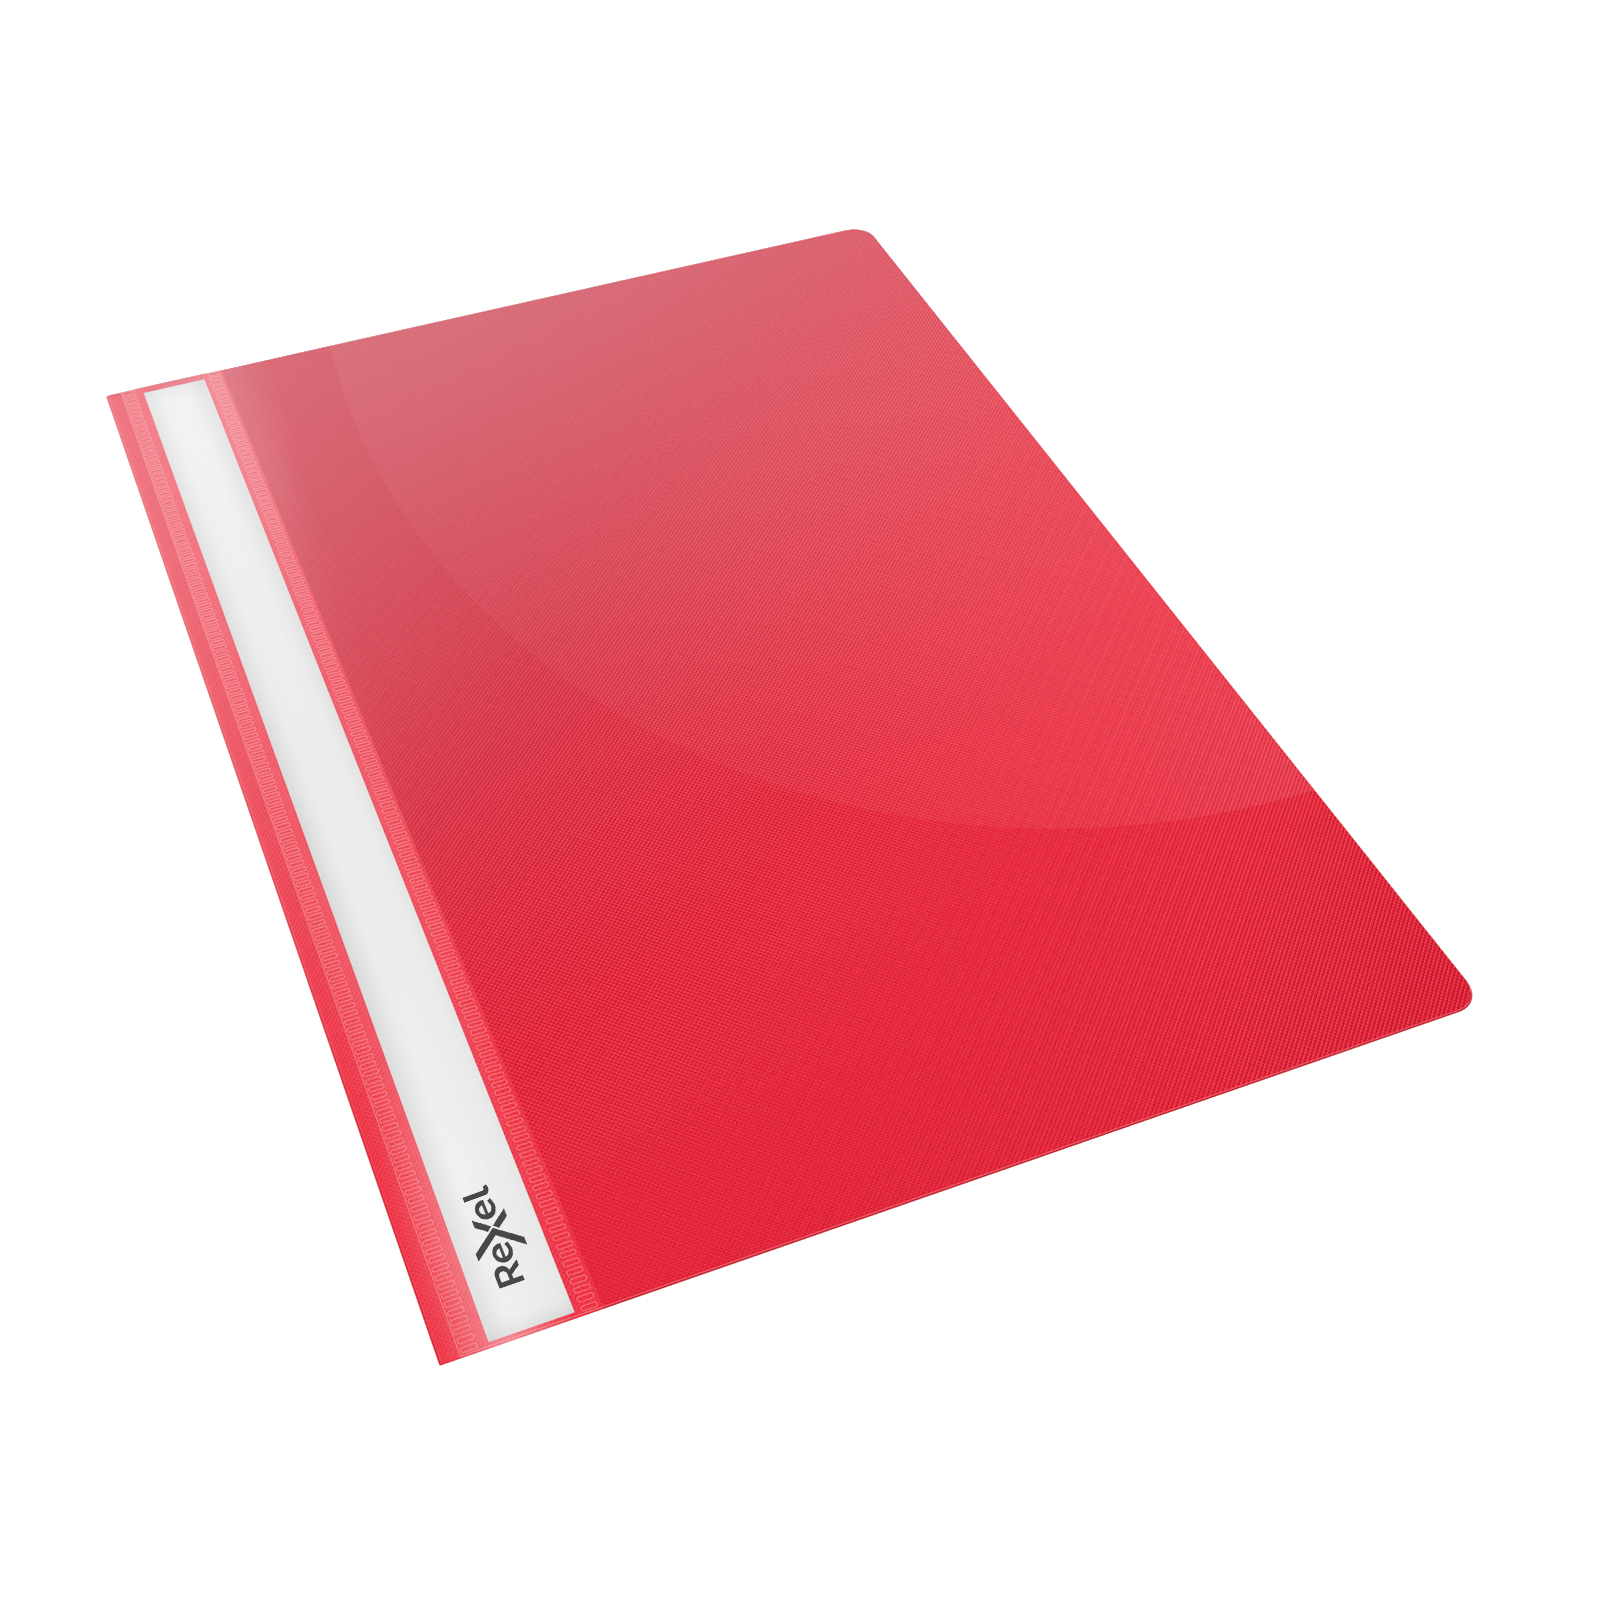 Rexel Choices Report Fldr Clear Front Capacity 160 Sheets A4 Red Ref 2115642 [Pack 25]